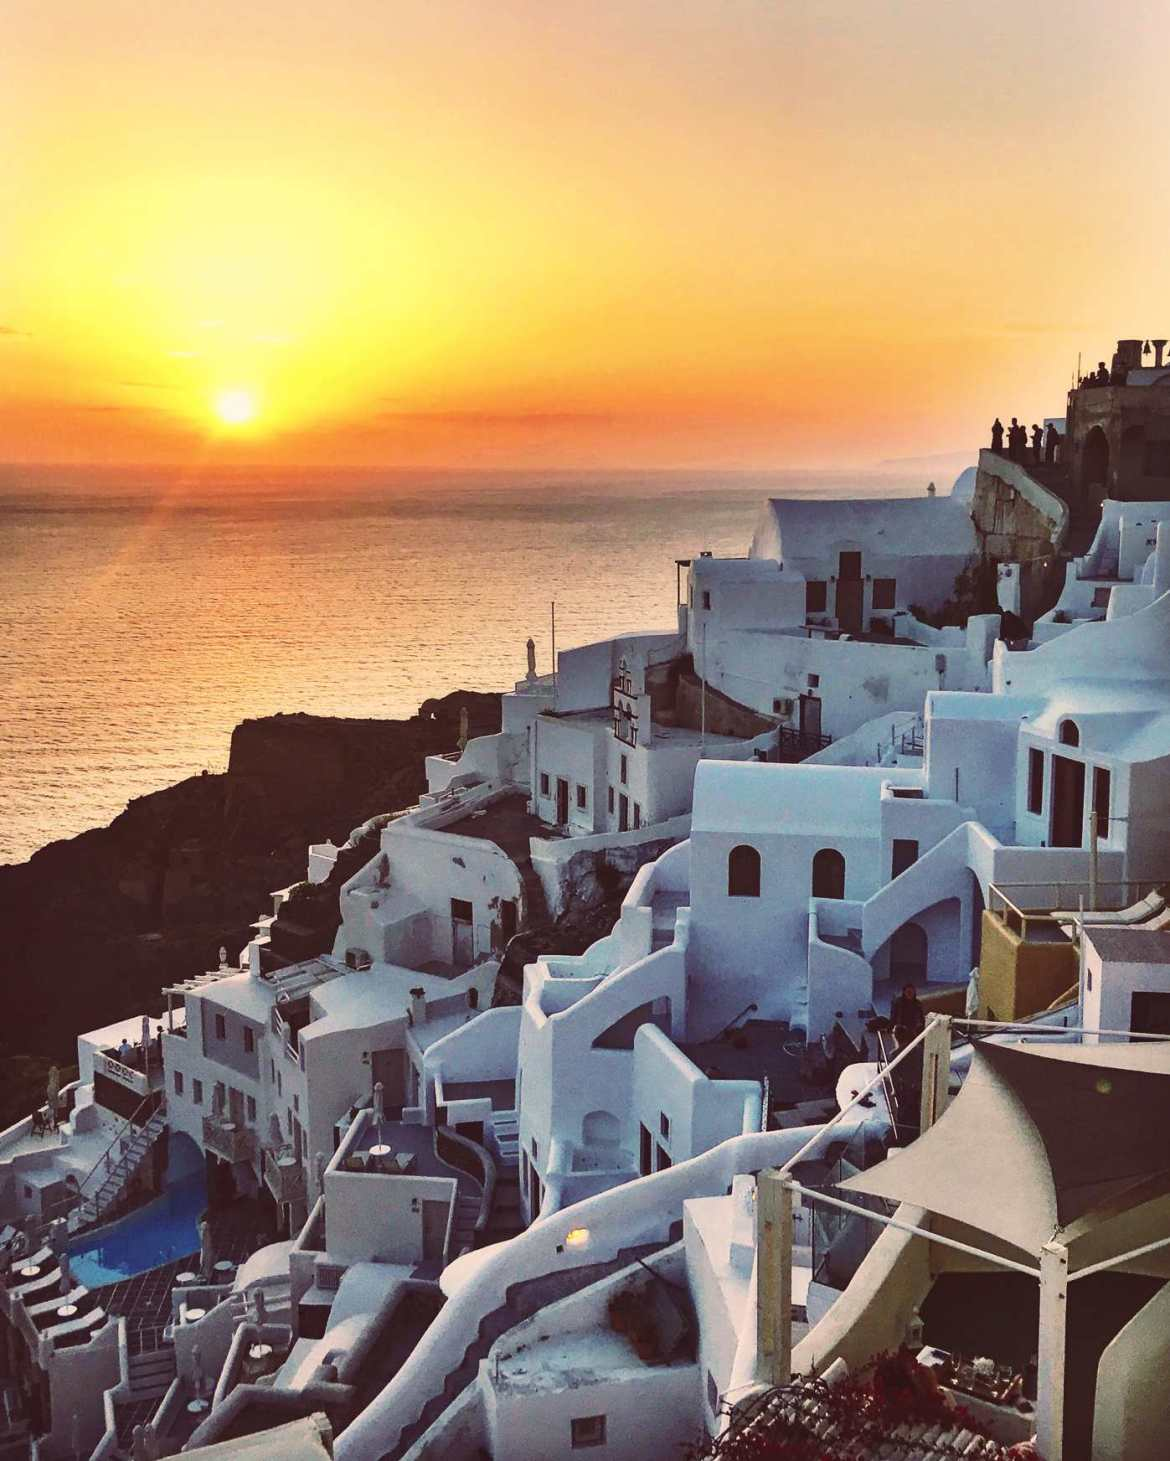 Stunning sunset in Santorini, Greece